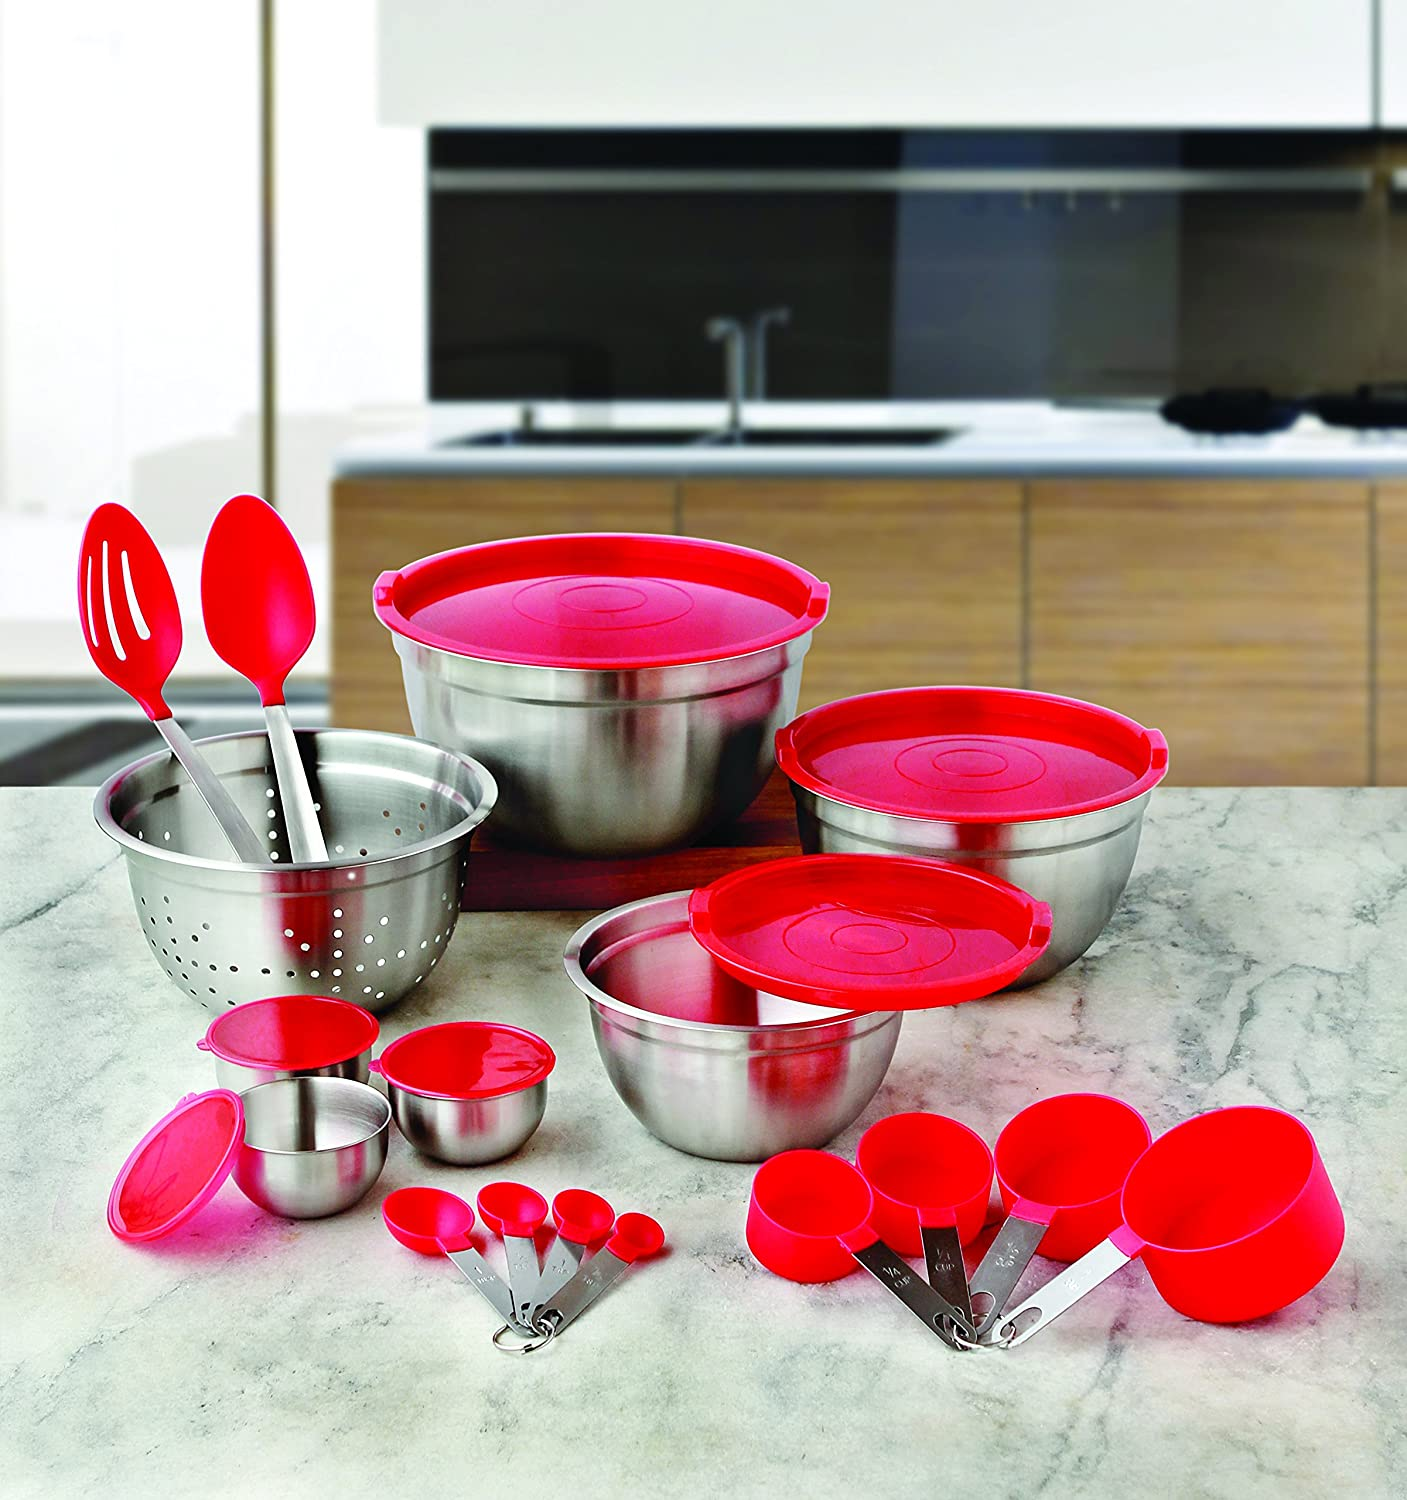 Better Homes and Gardens 23-Piece Gadget and Utensil Set (Red)